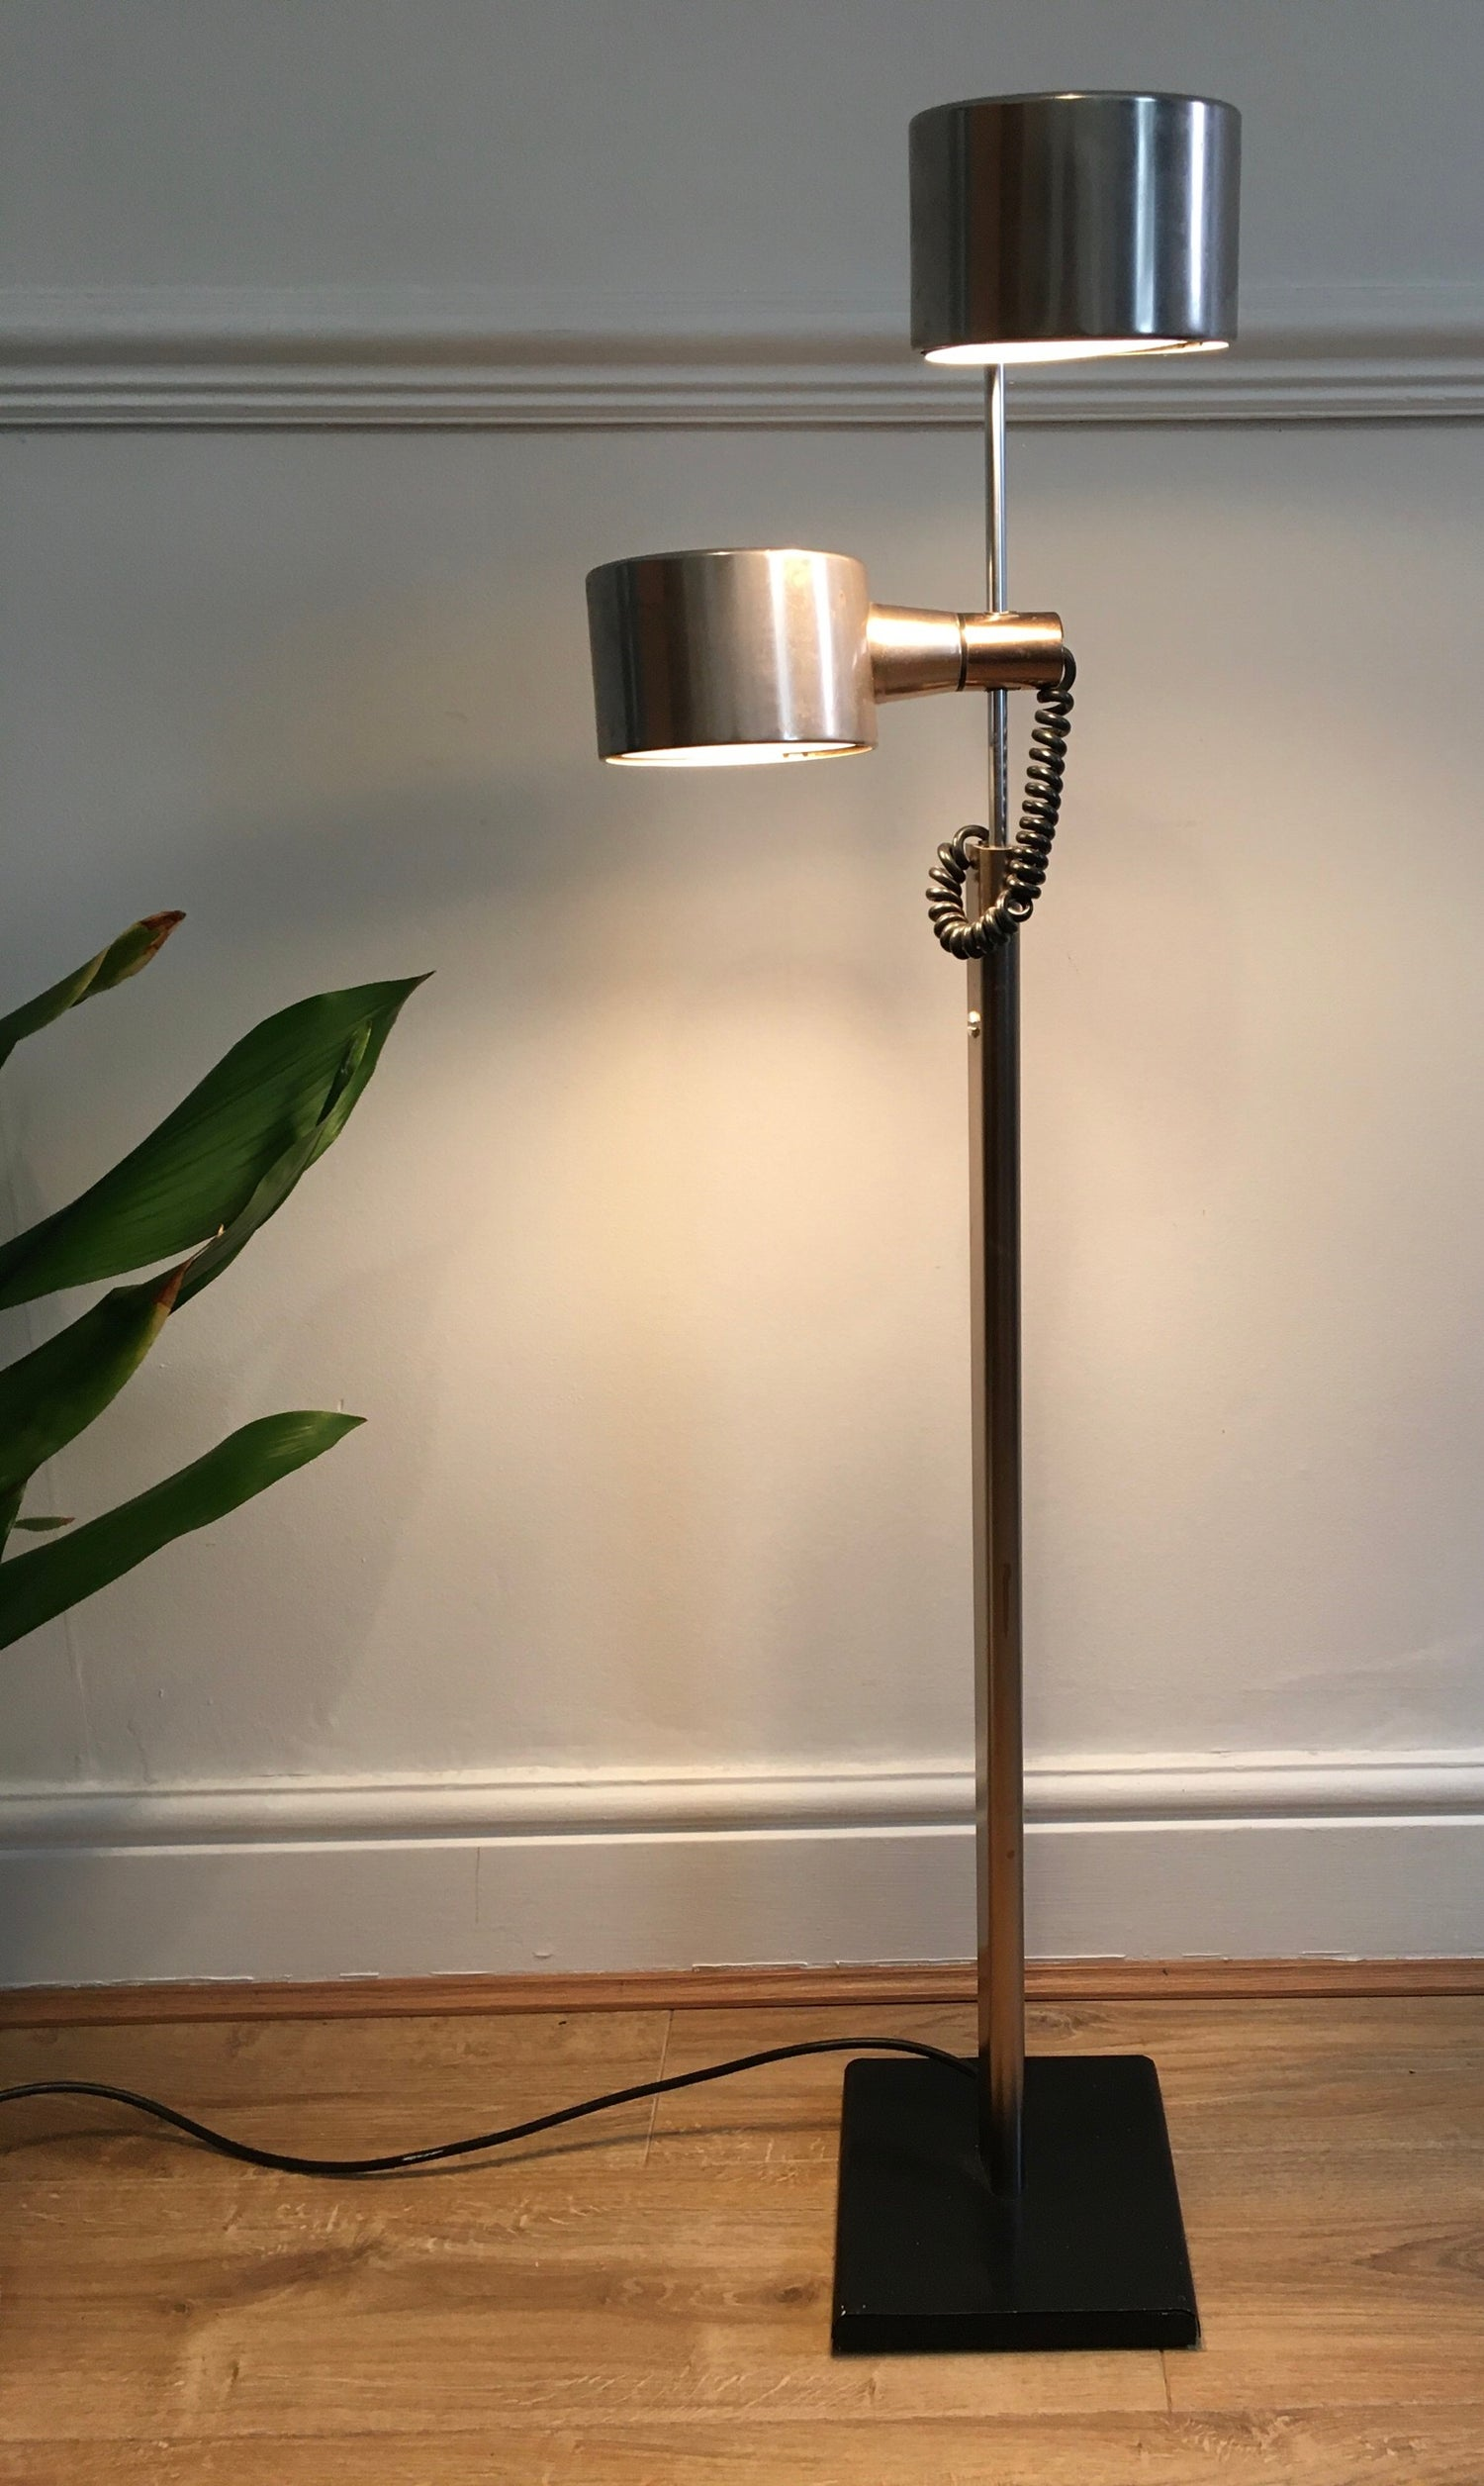 Chrome anglepoise lamp